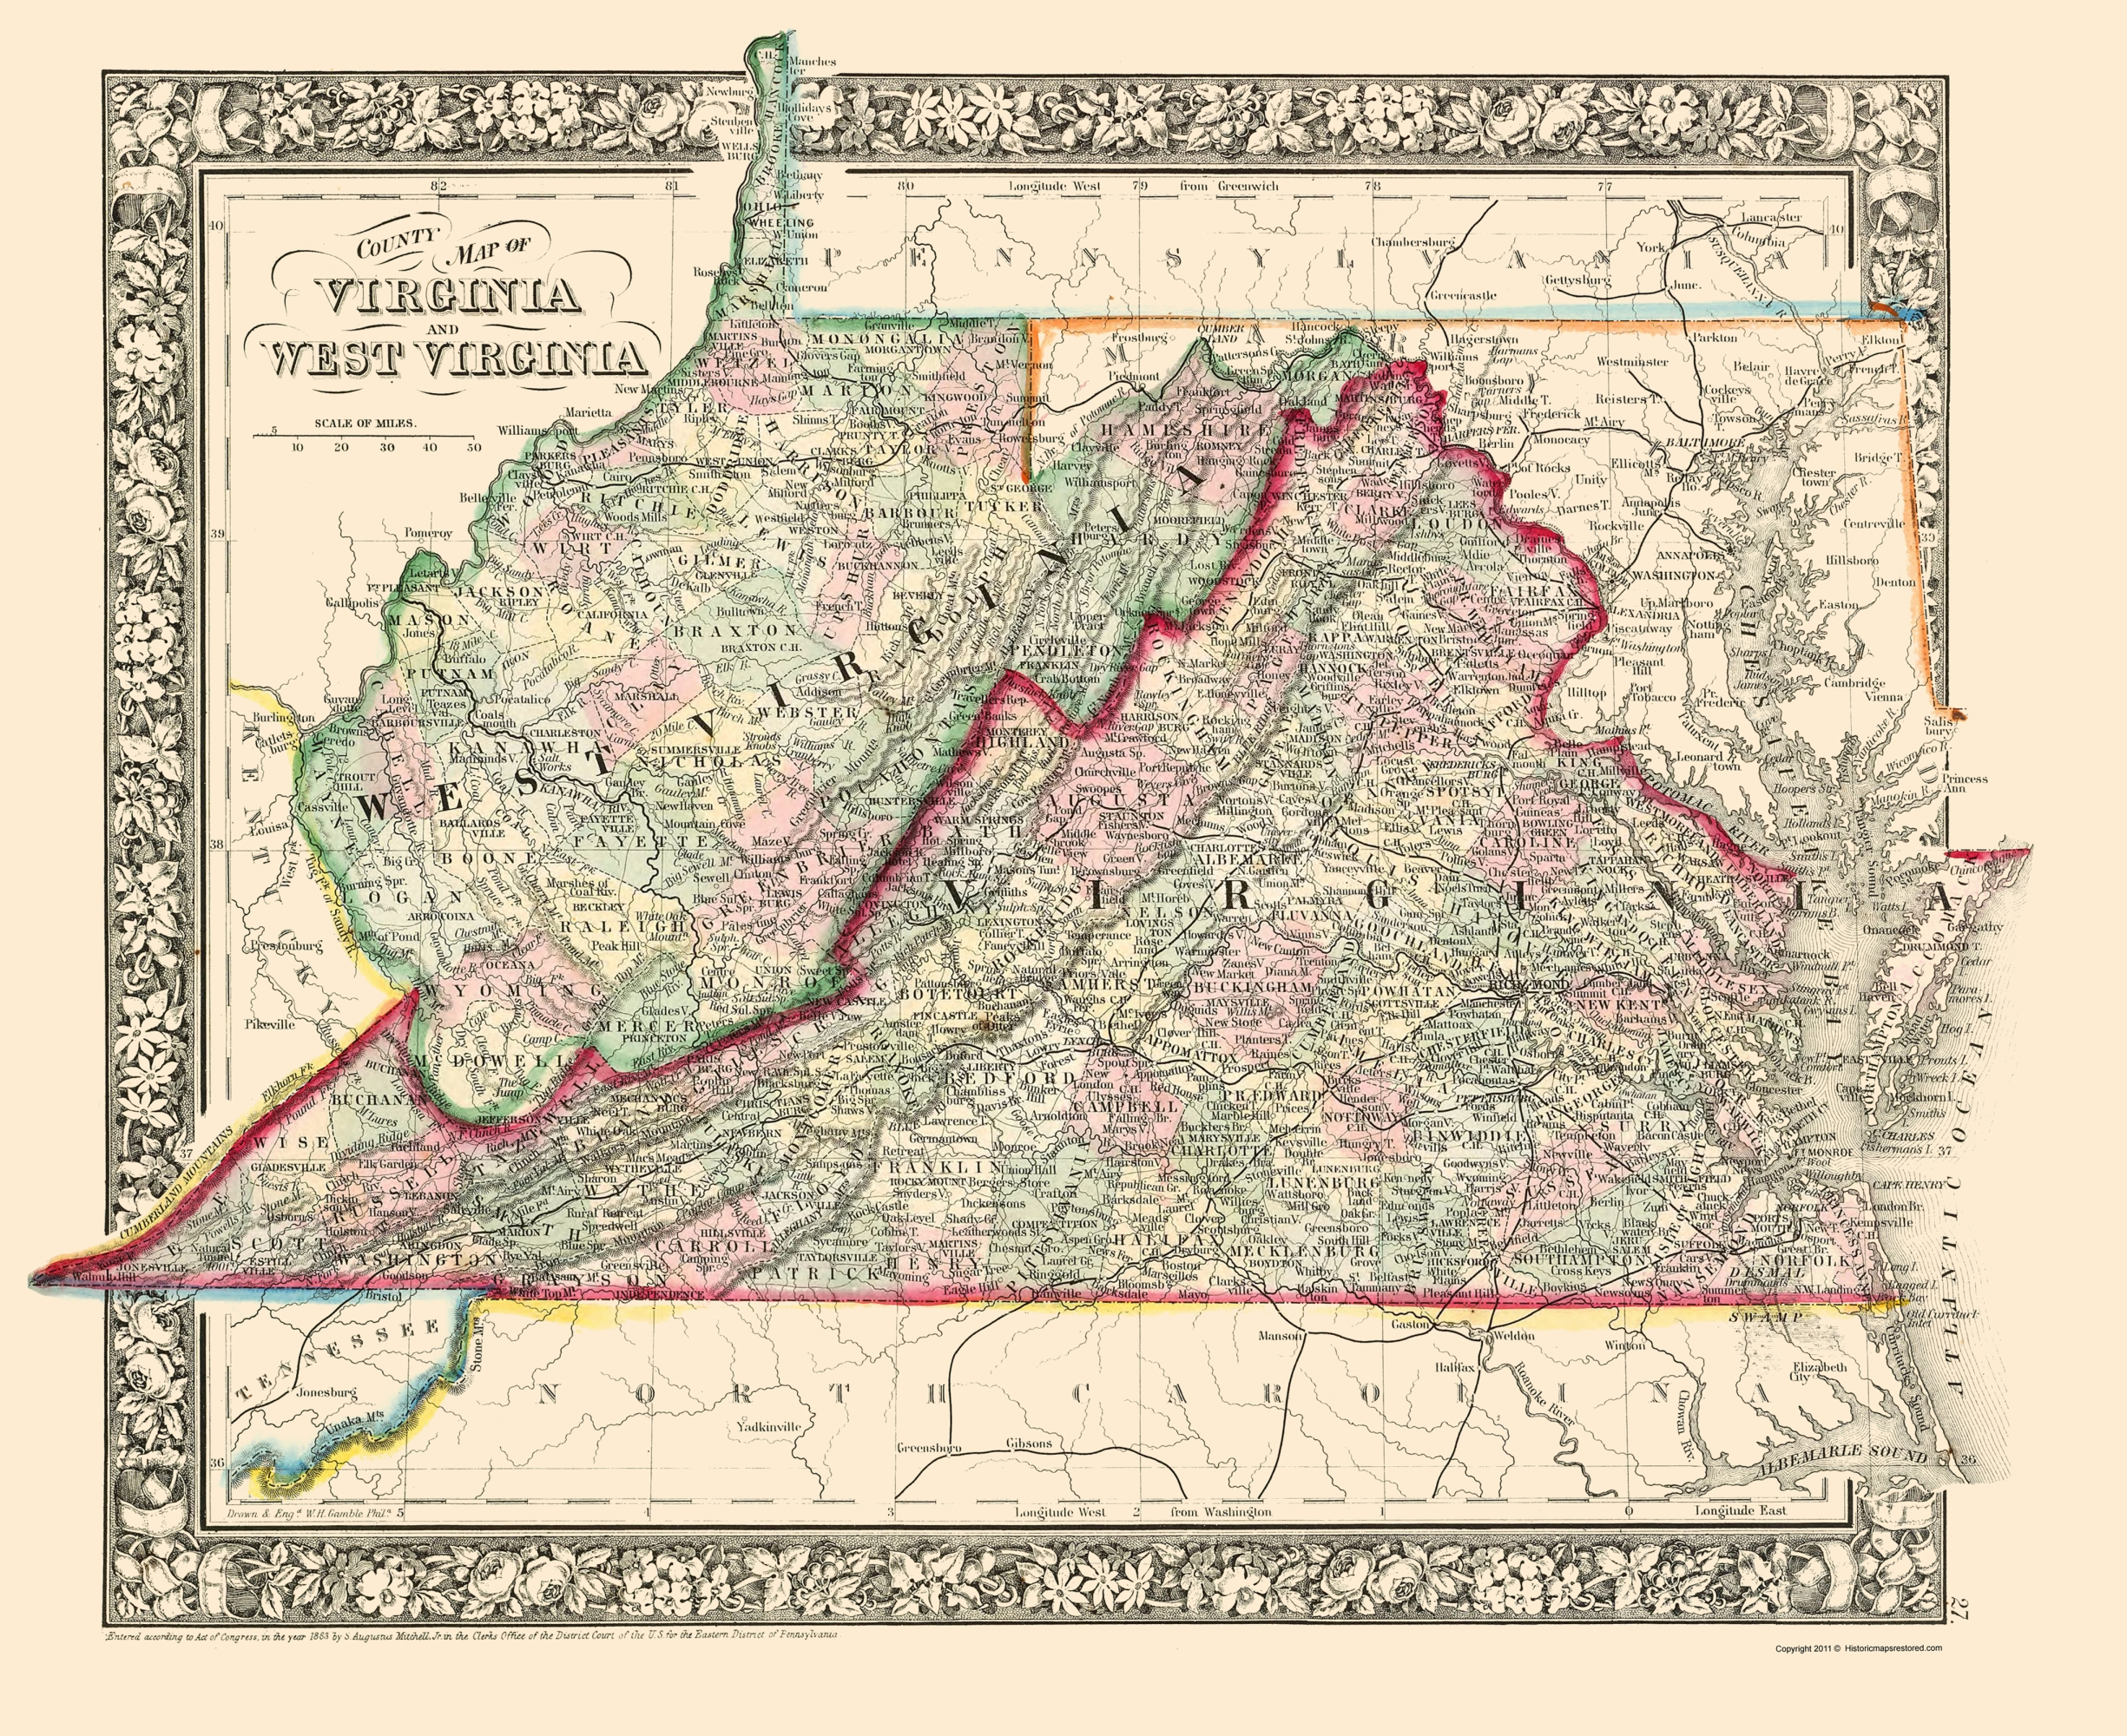 Old State Map - Virginia, West Virginia Counties 1863